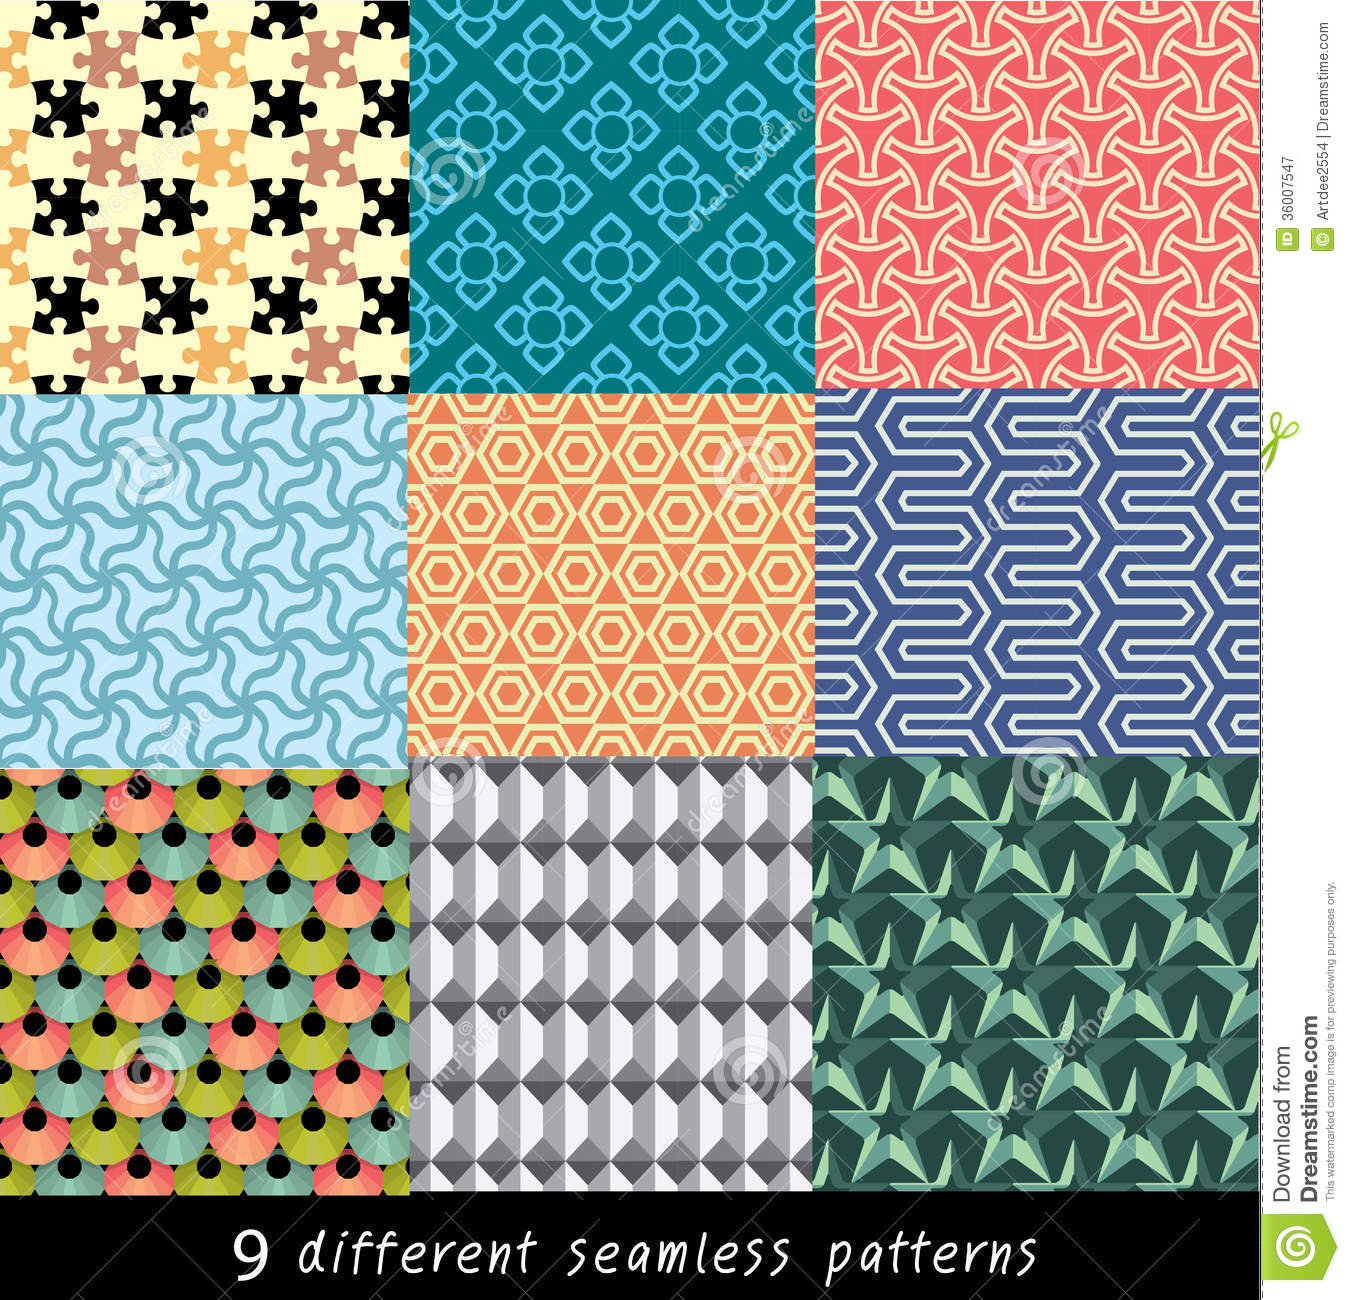 Easy Geometric Patterns Unique Design